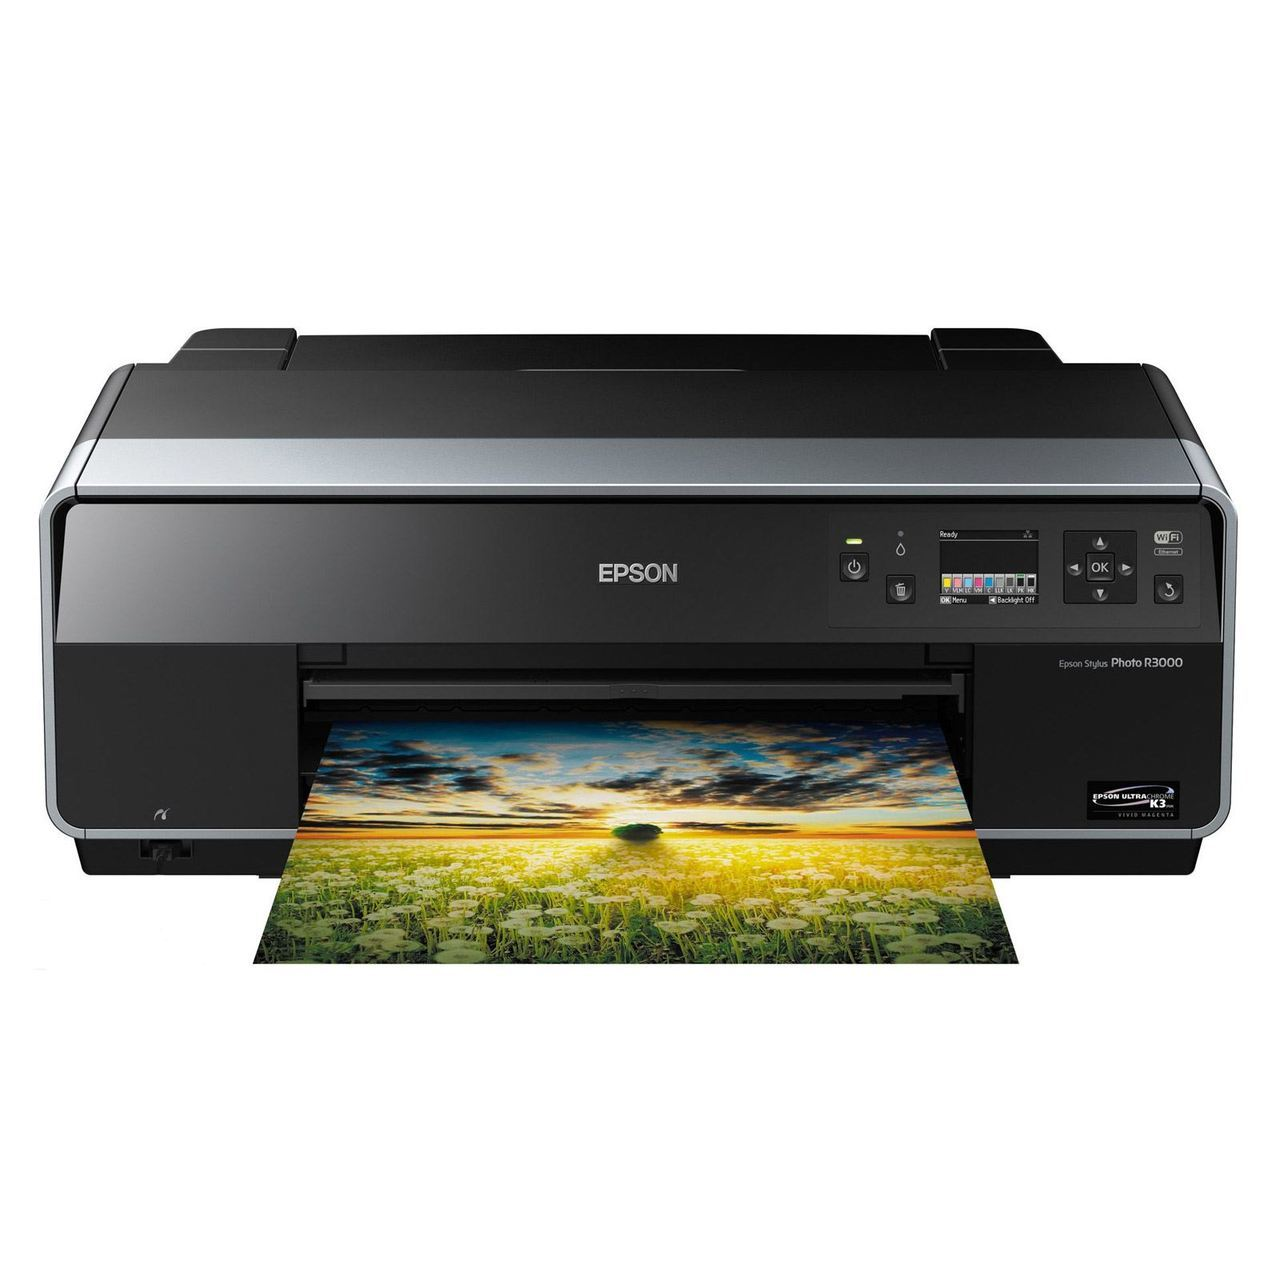 Interesting All It Products Epson Stylus Photo Wireless Color Inkjet Techsouq Leading Store Epson Stylus Photo R3000 Driver Epson Stylus Photo R3000 Manual dpreview Epson Stylus Photo R3000